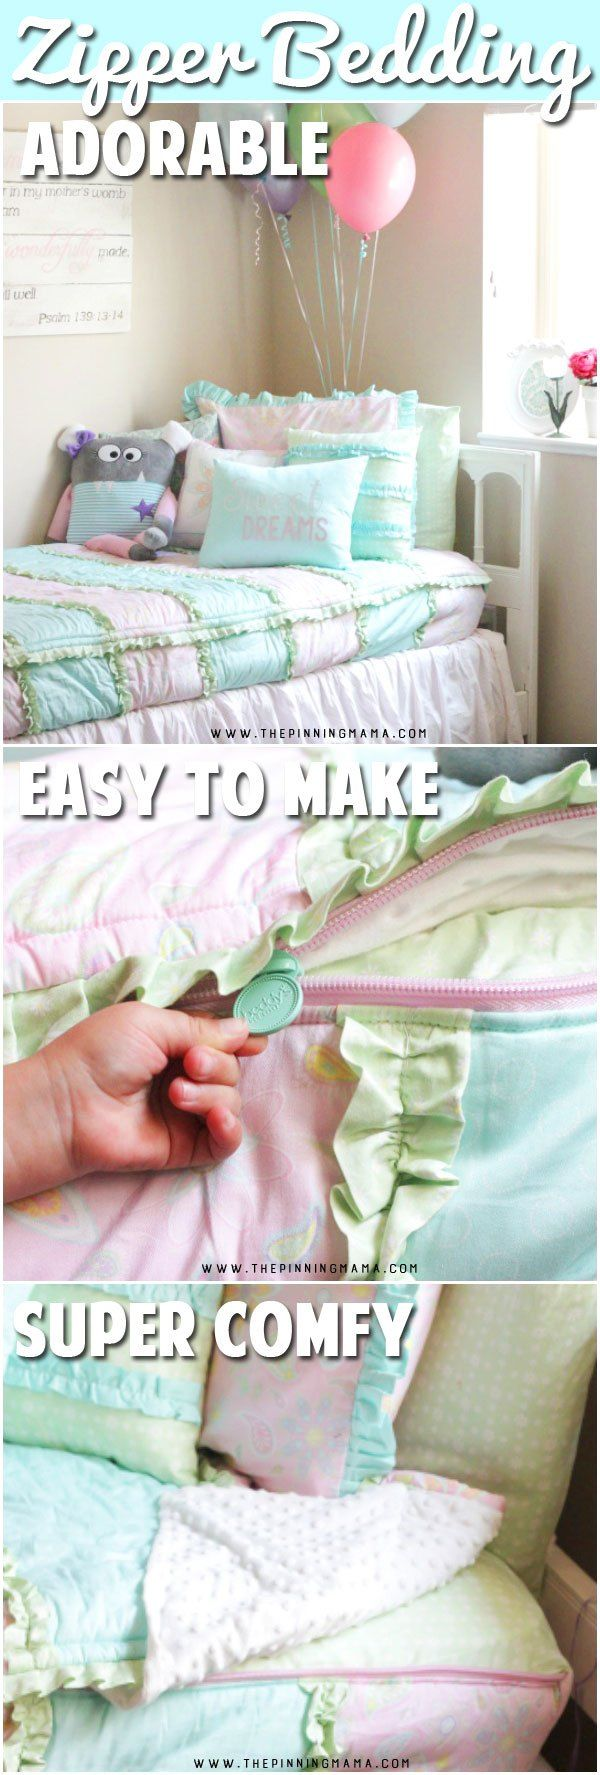 Cutest kids bedding! This bedding zips up the sides so the you always have a perfectly made bed! Even the youngest kids can make this bed. It is one piece expertly made to replace the comforter, flat sheet, fitted sheet, and cuddle blanket. I love this!!